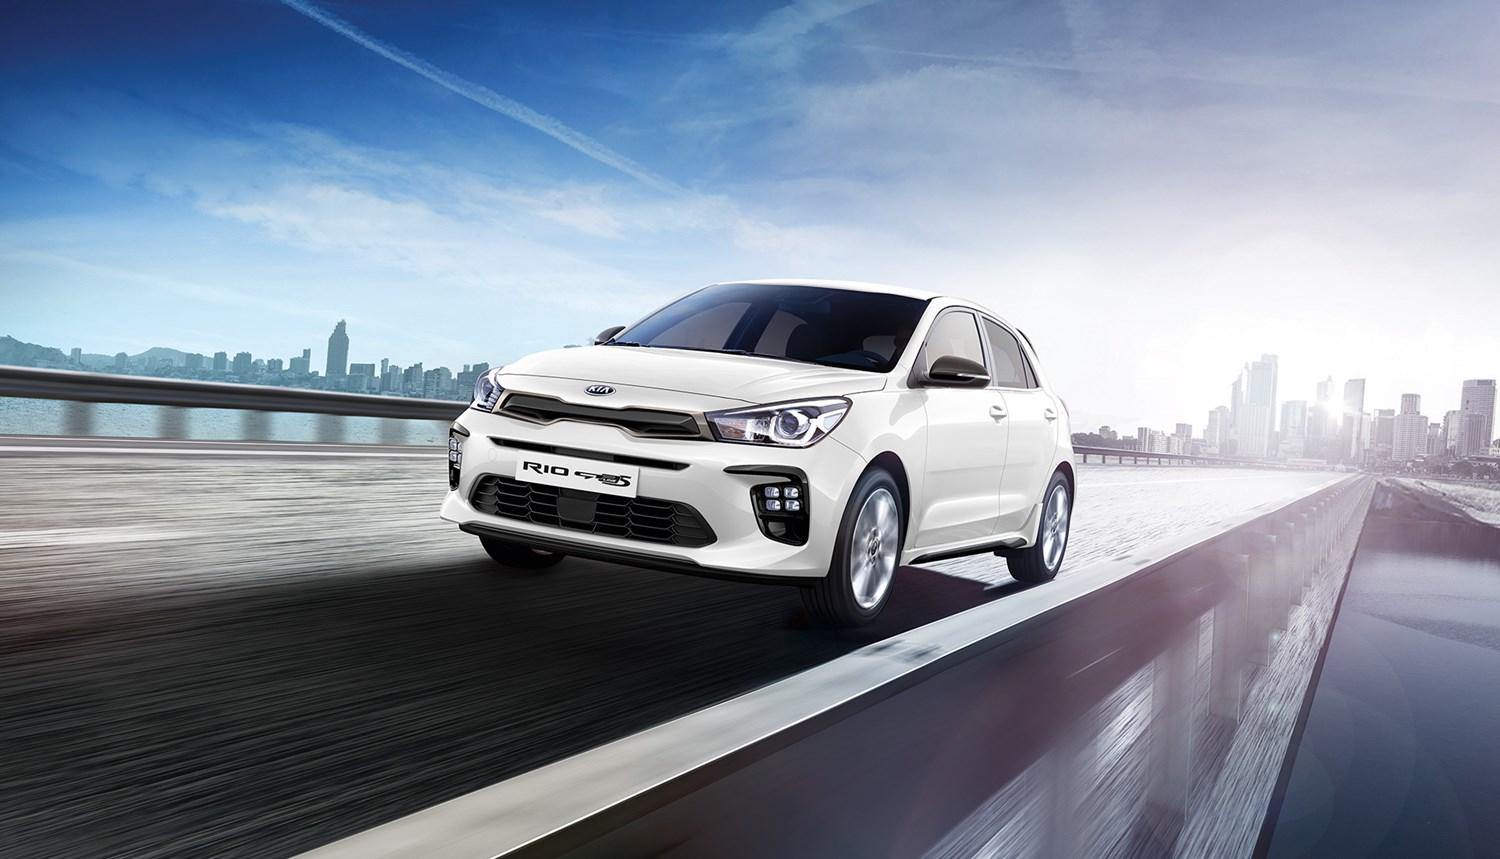 New Kia Rio 2021 in white